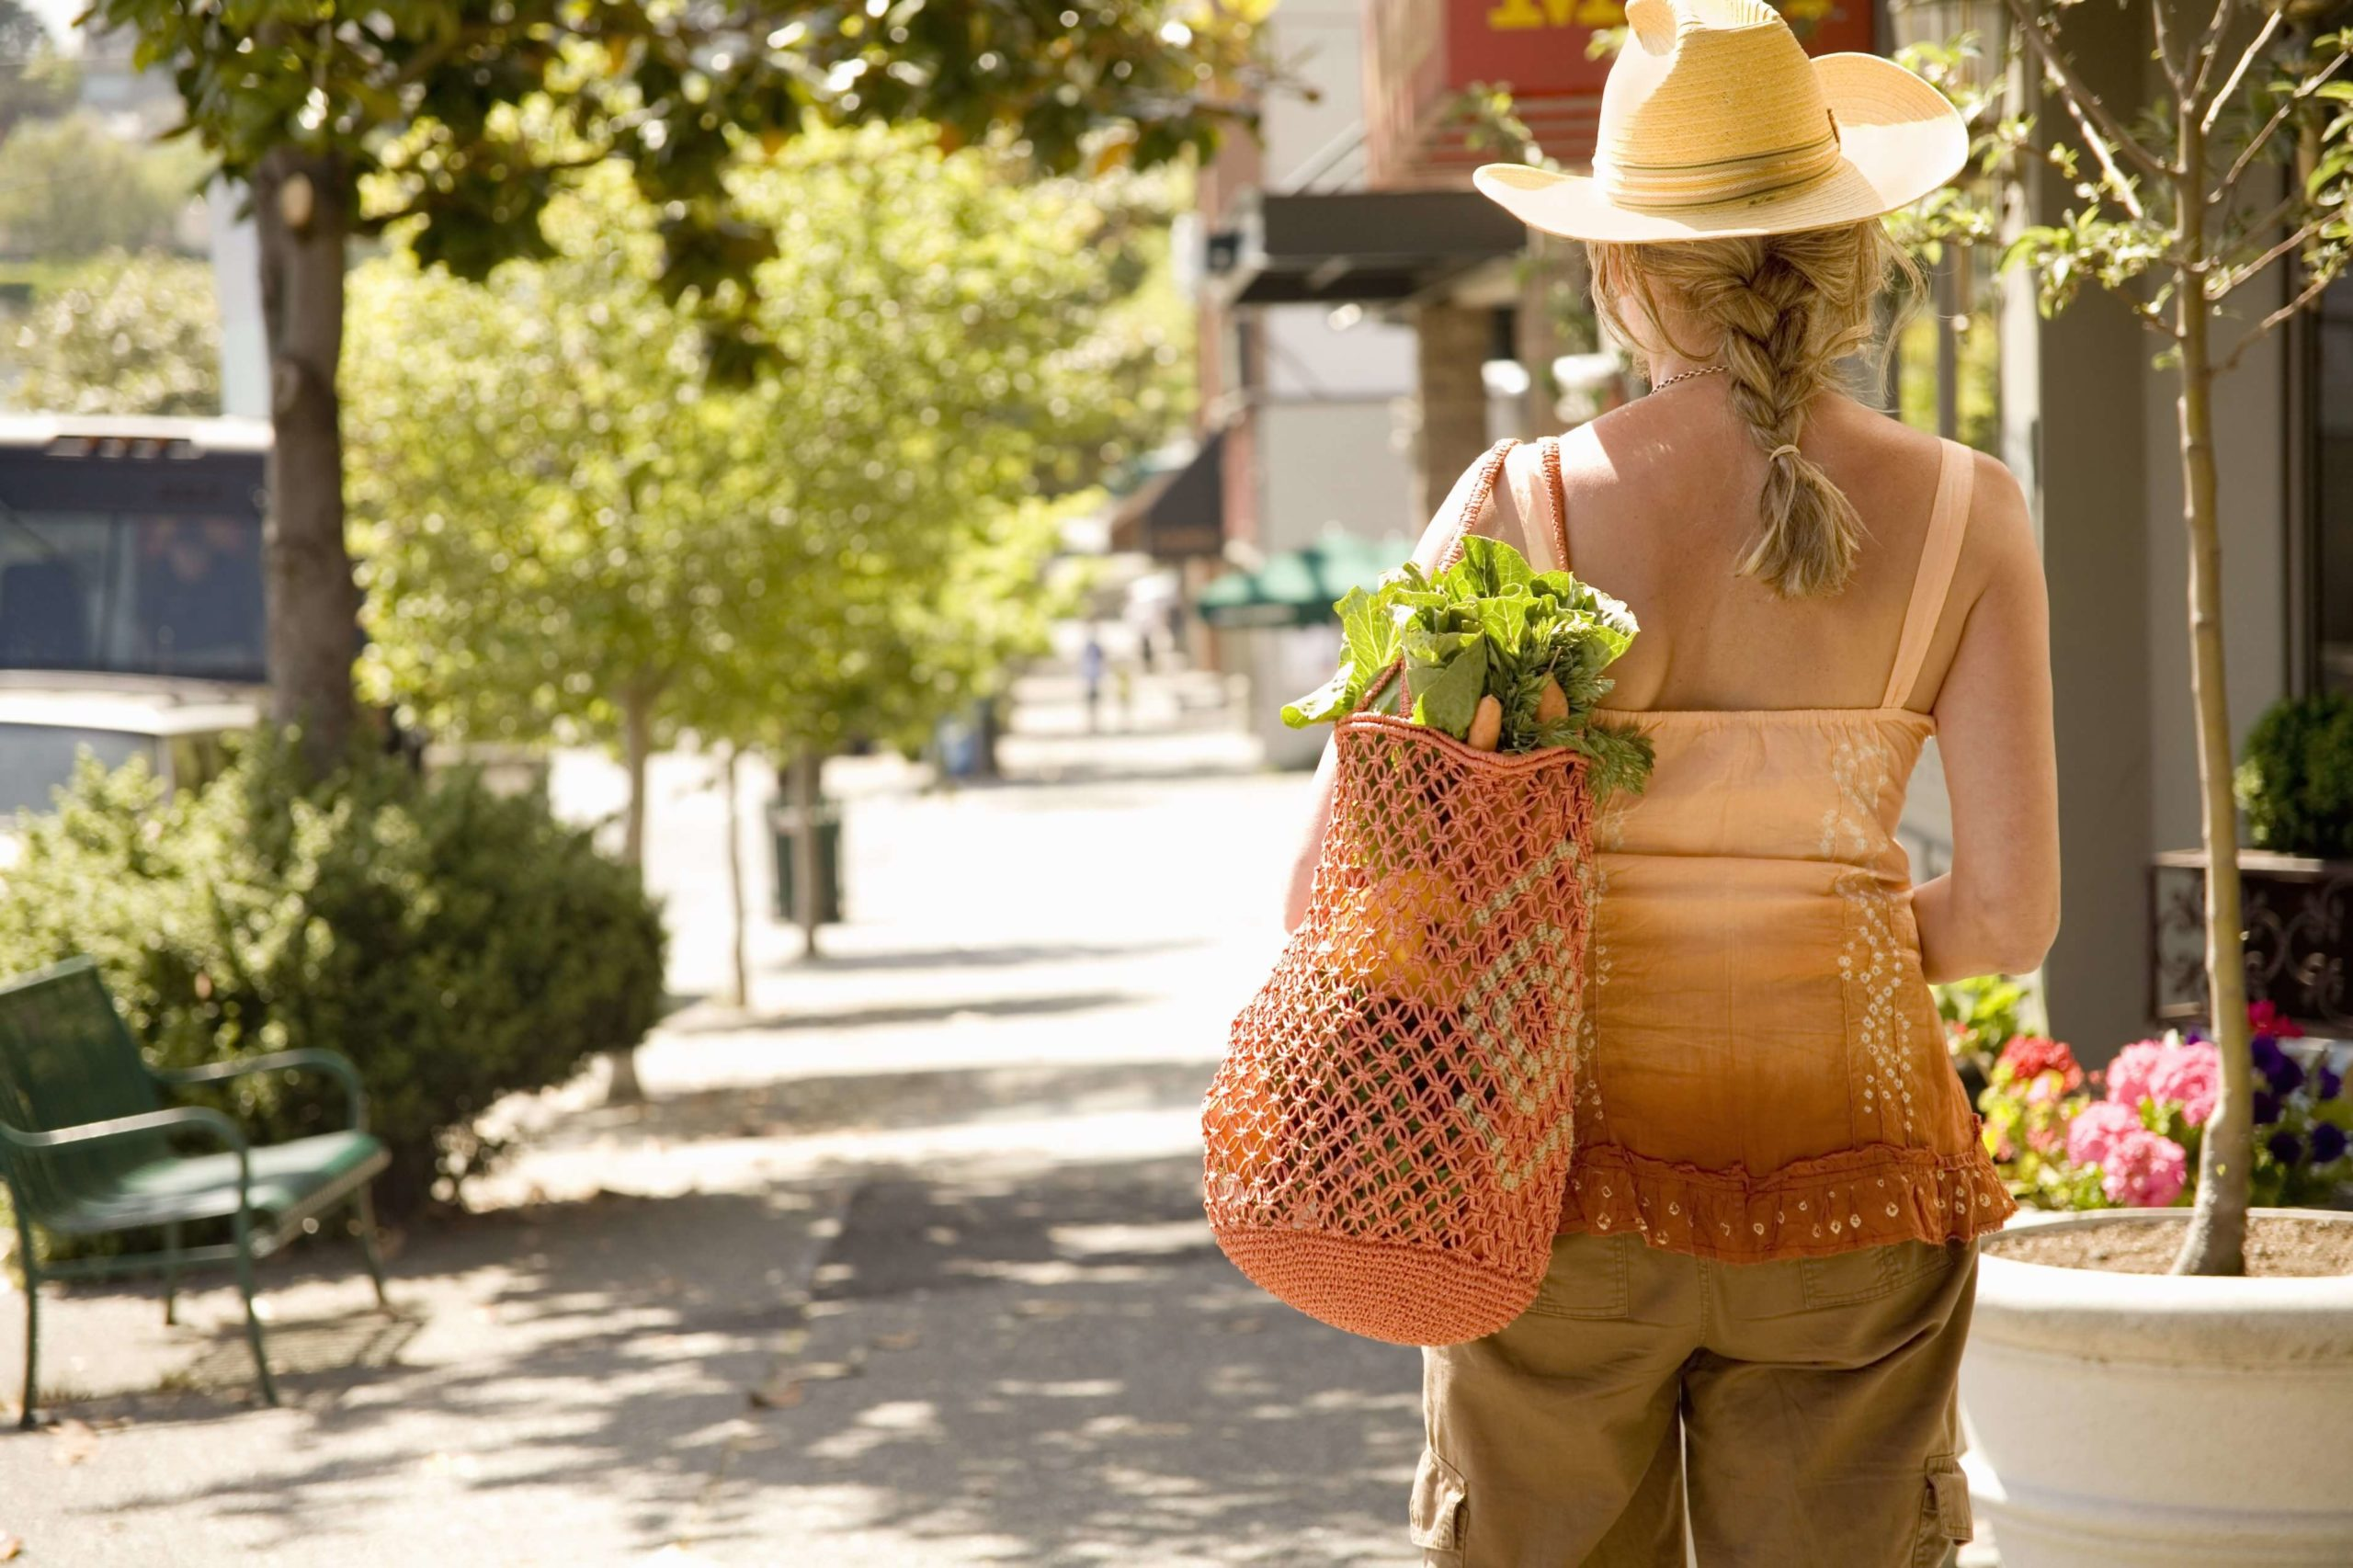 Desert Color Woman Groceries Walk Sidewalk